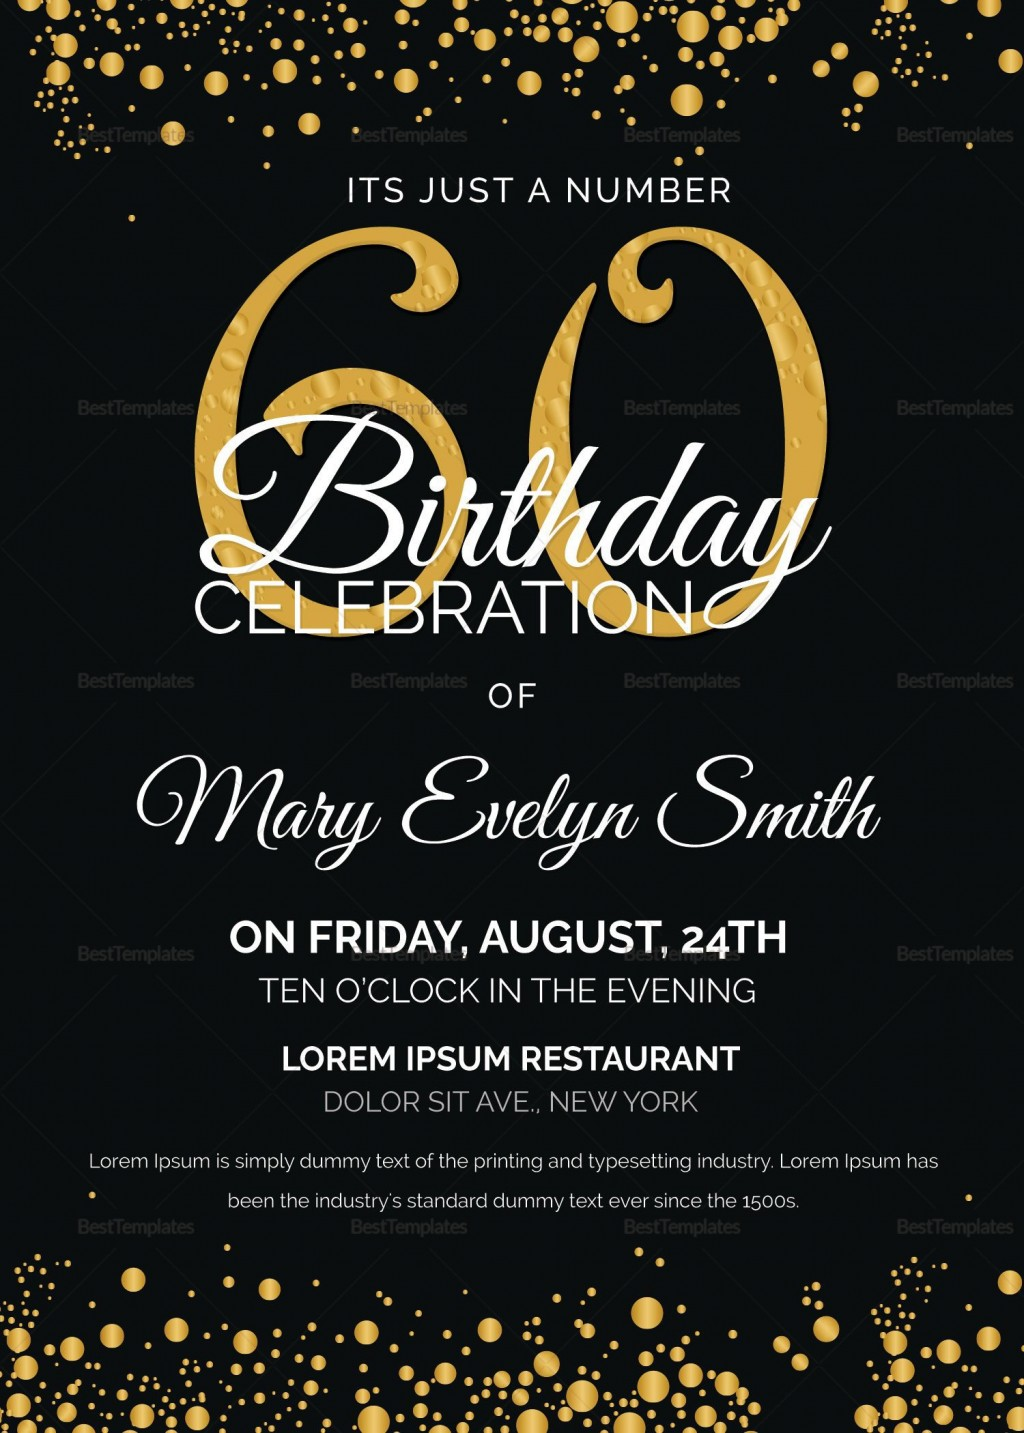 005 Astounding 60th Birthday Invite Template Idea  Templates Funny Invitation Free PartyLarge